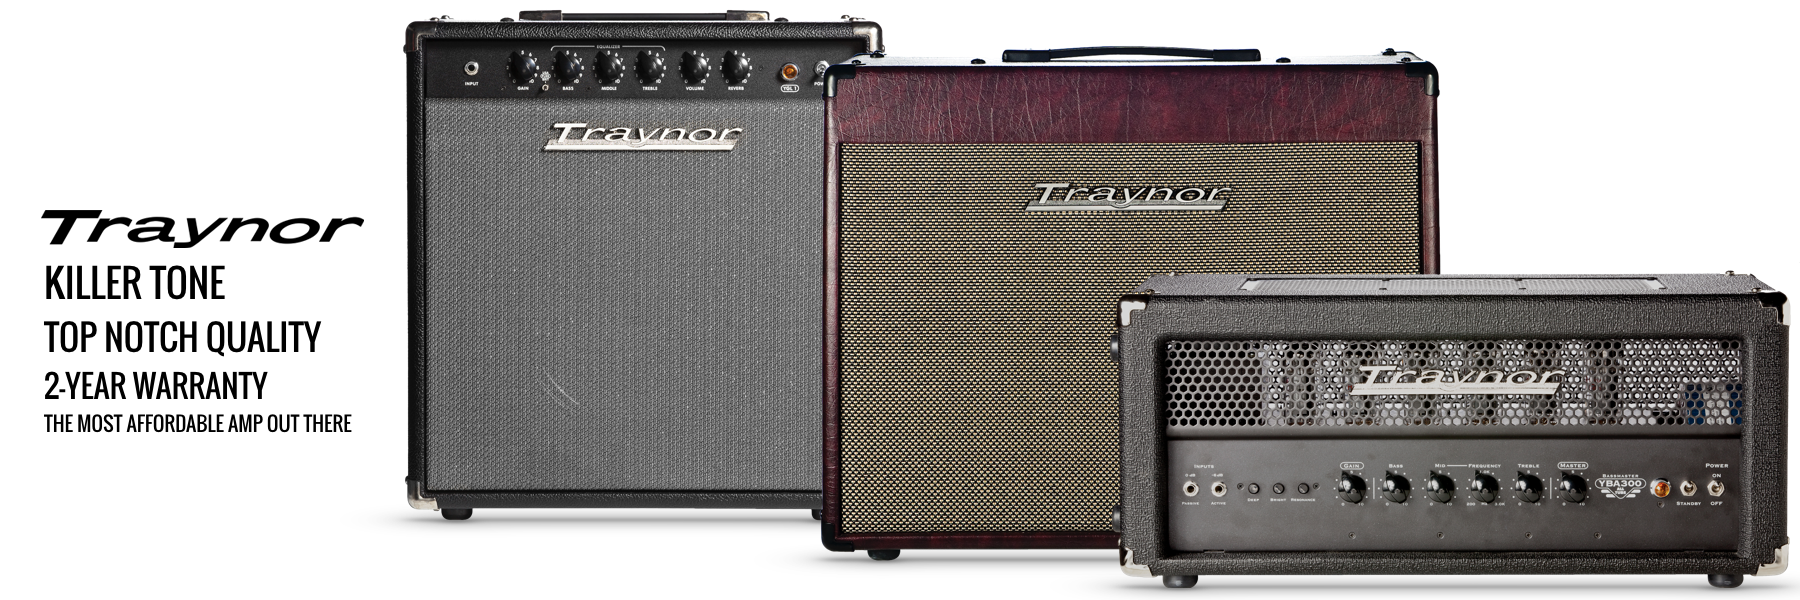 Traynor Amplifiers